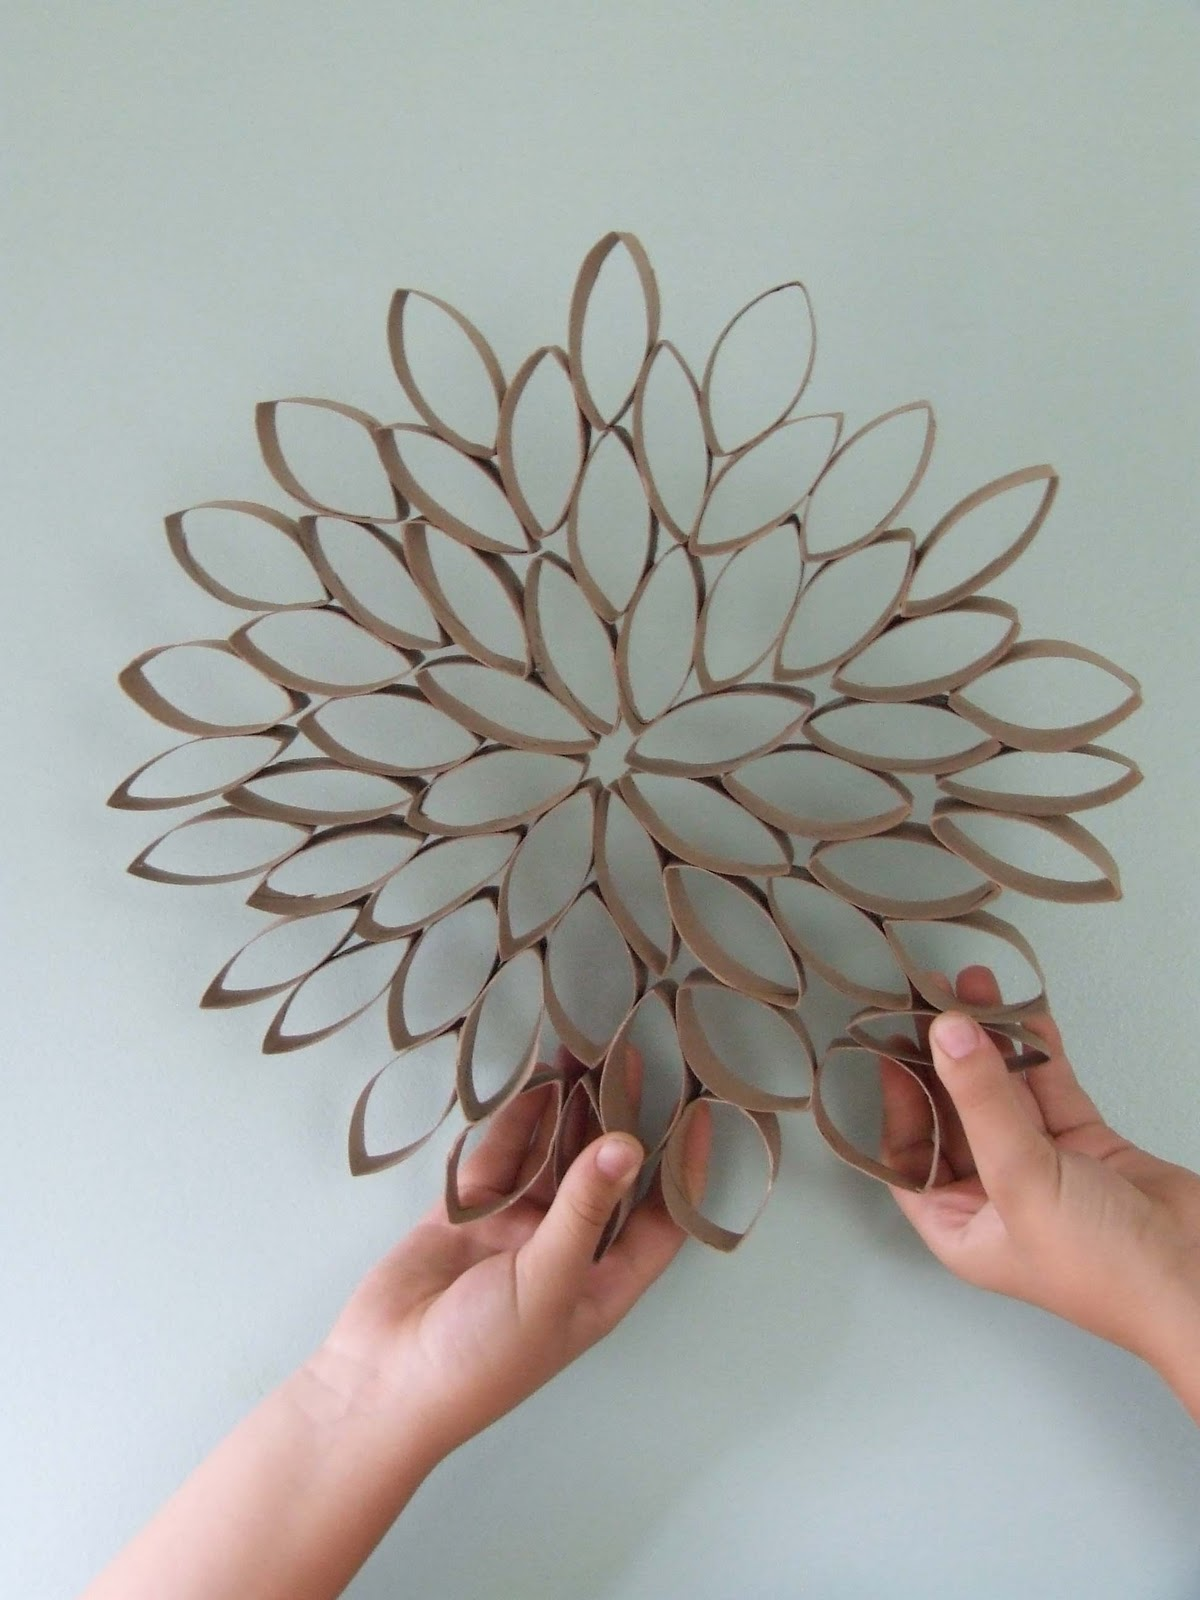 How To Make Toilet Paper Flowers Gallery - Flower Decoration Ideas